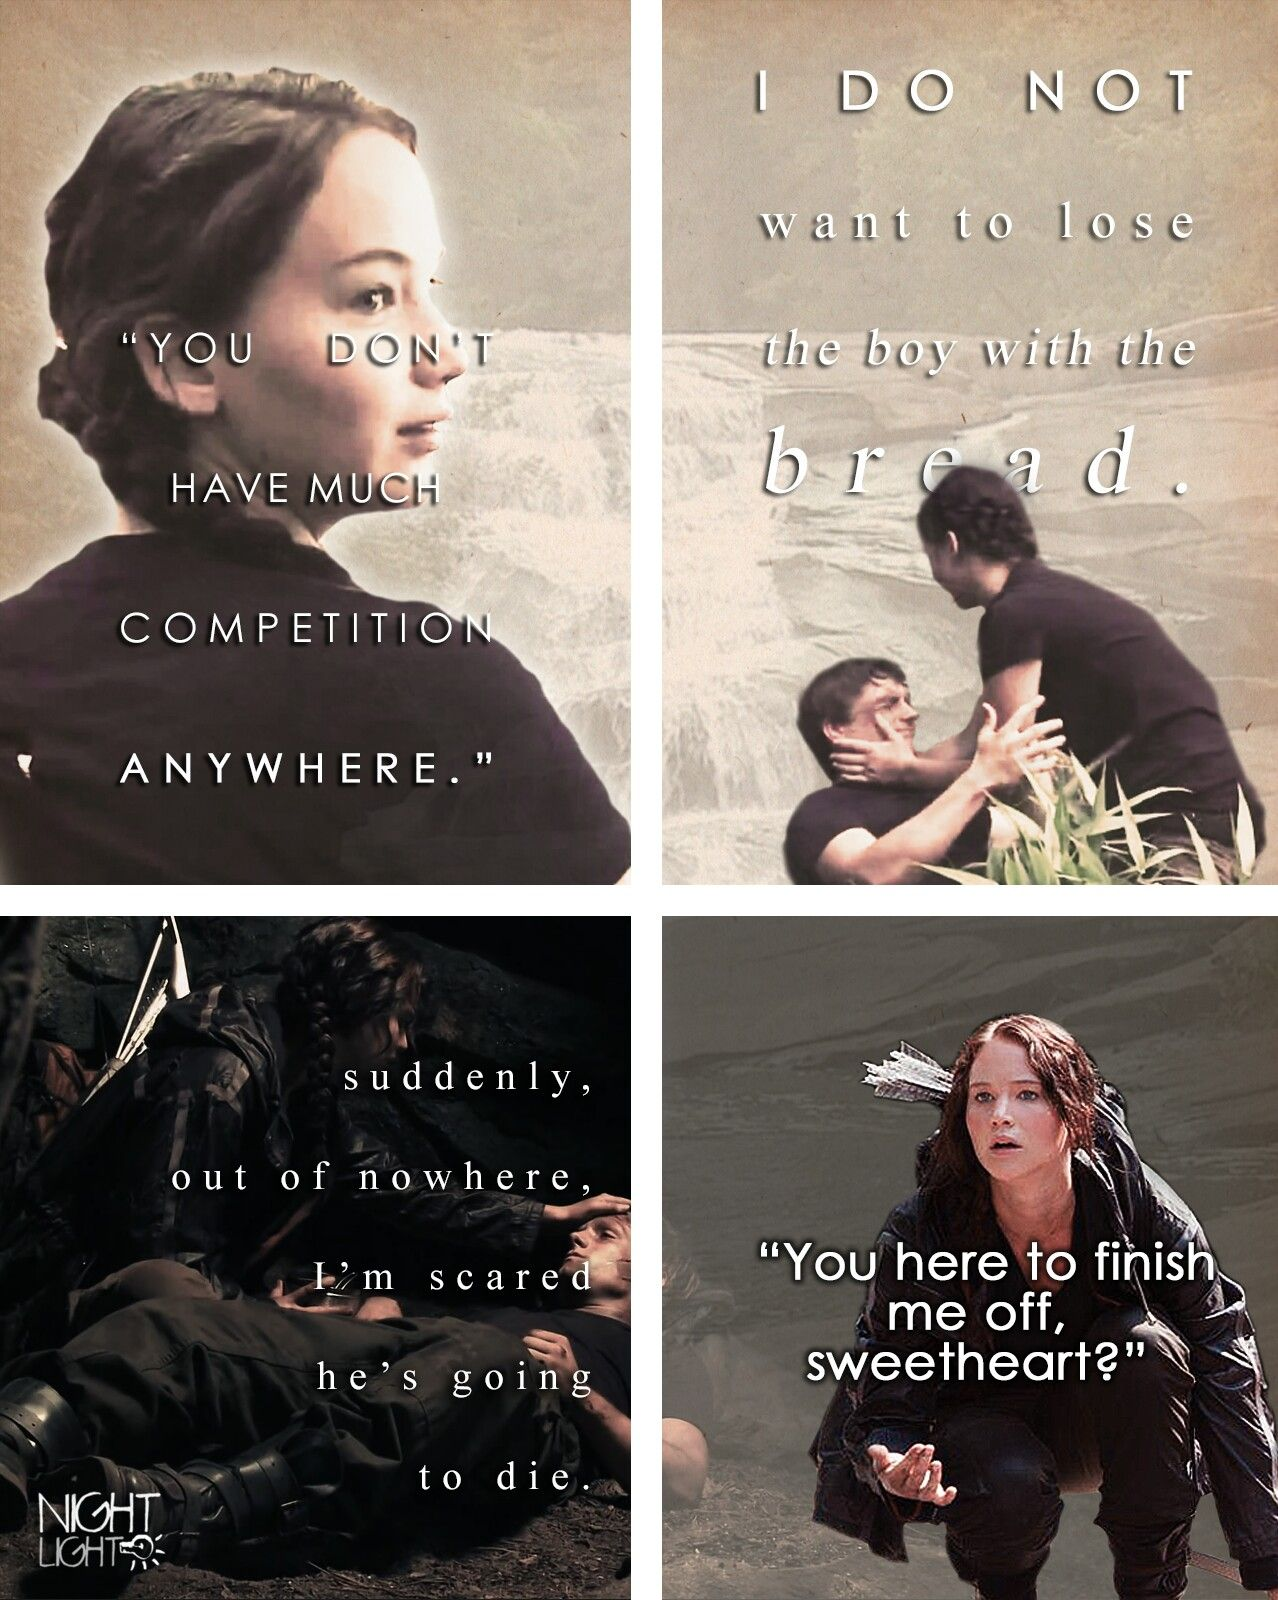 Pin by Lizzy V on Hunger Games Hunger games quotes